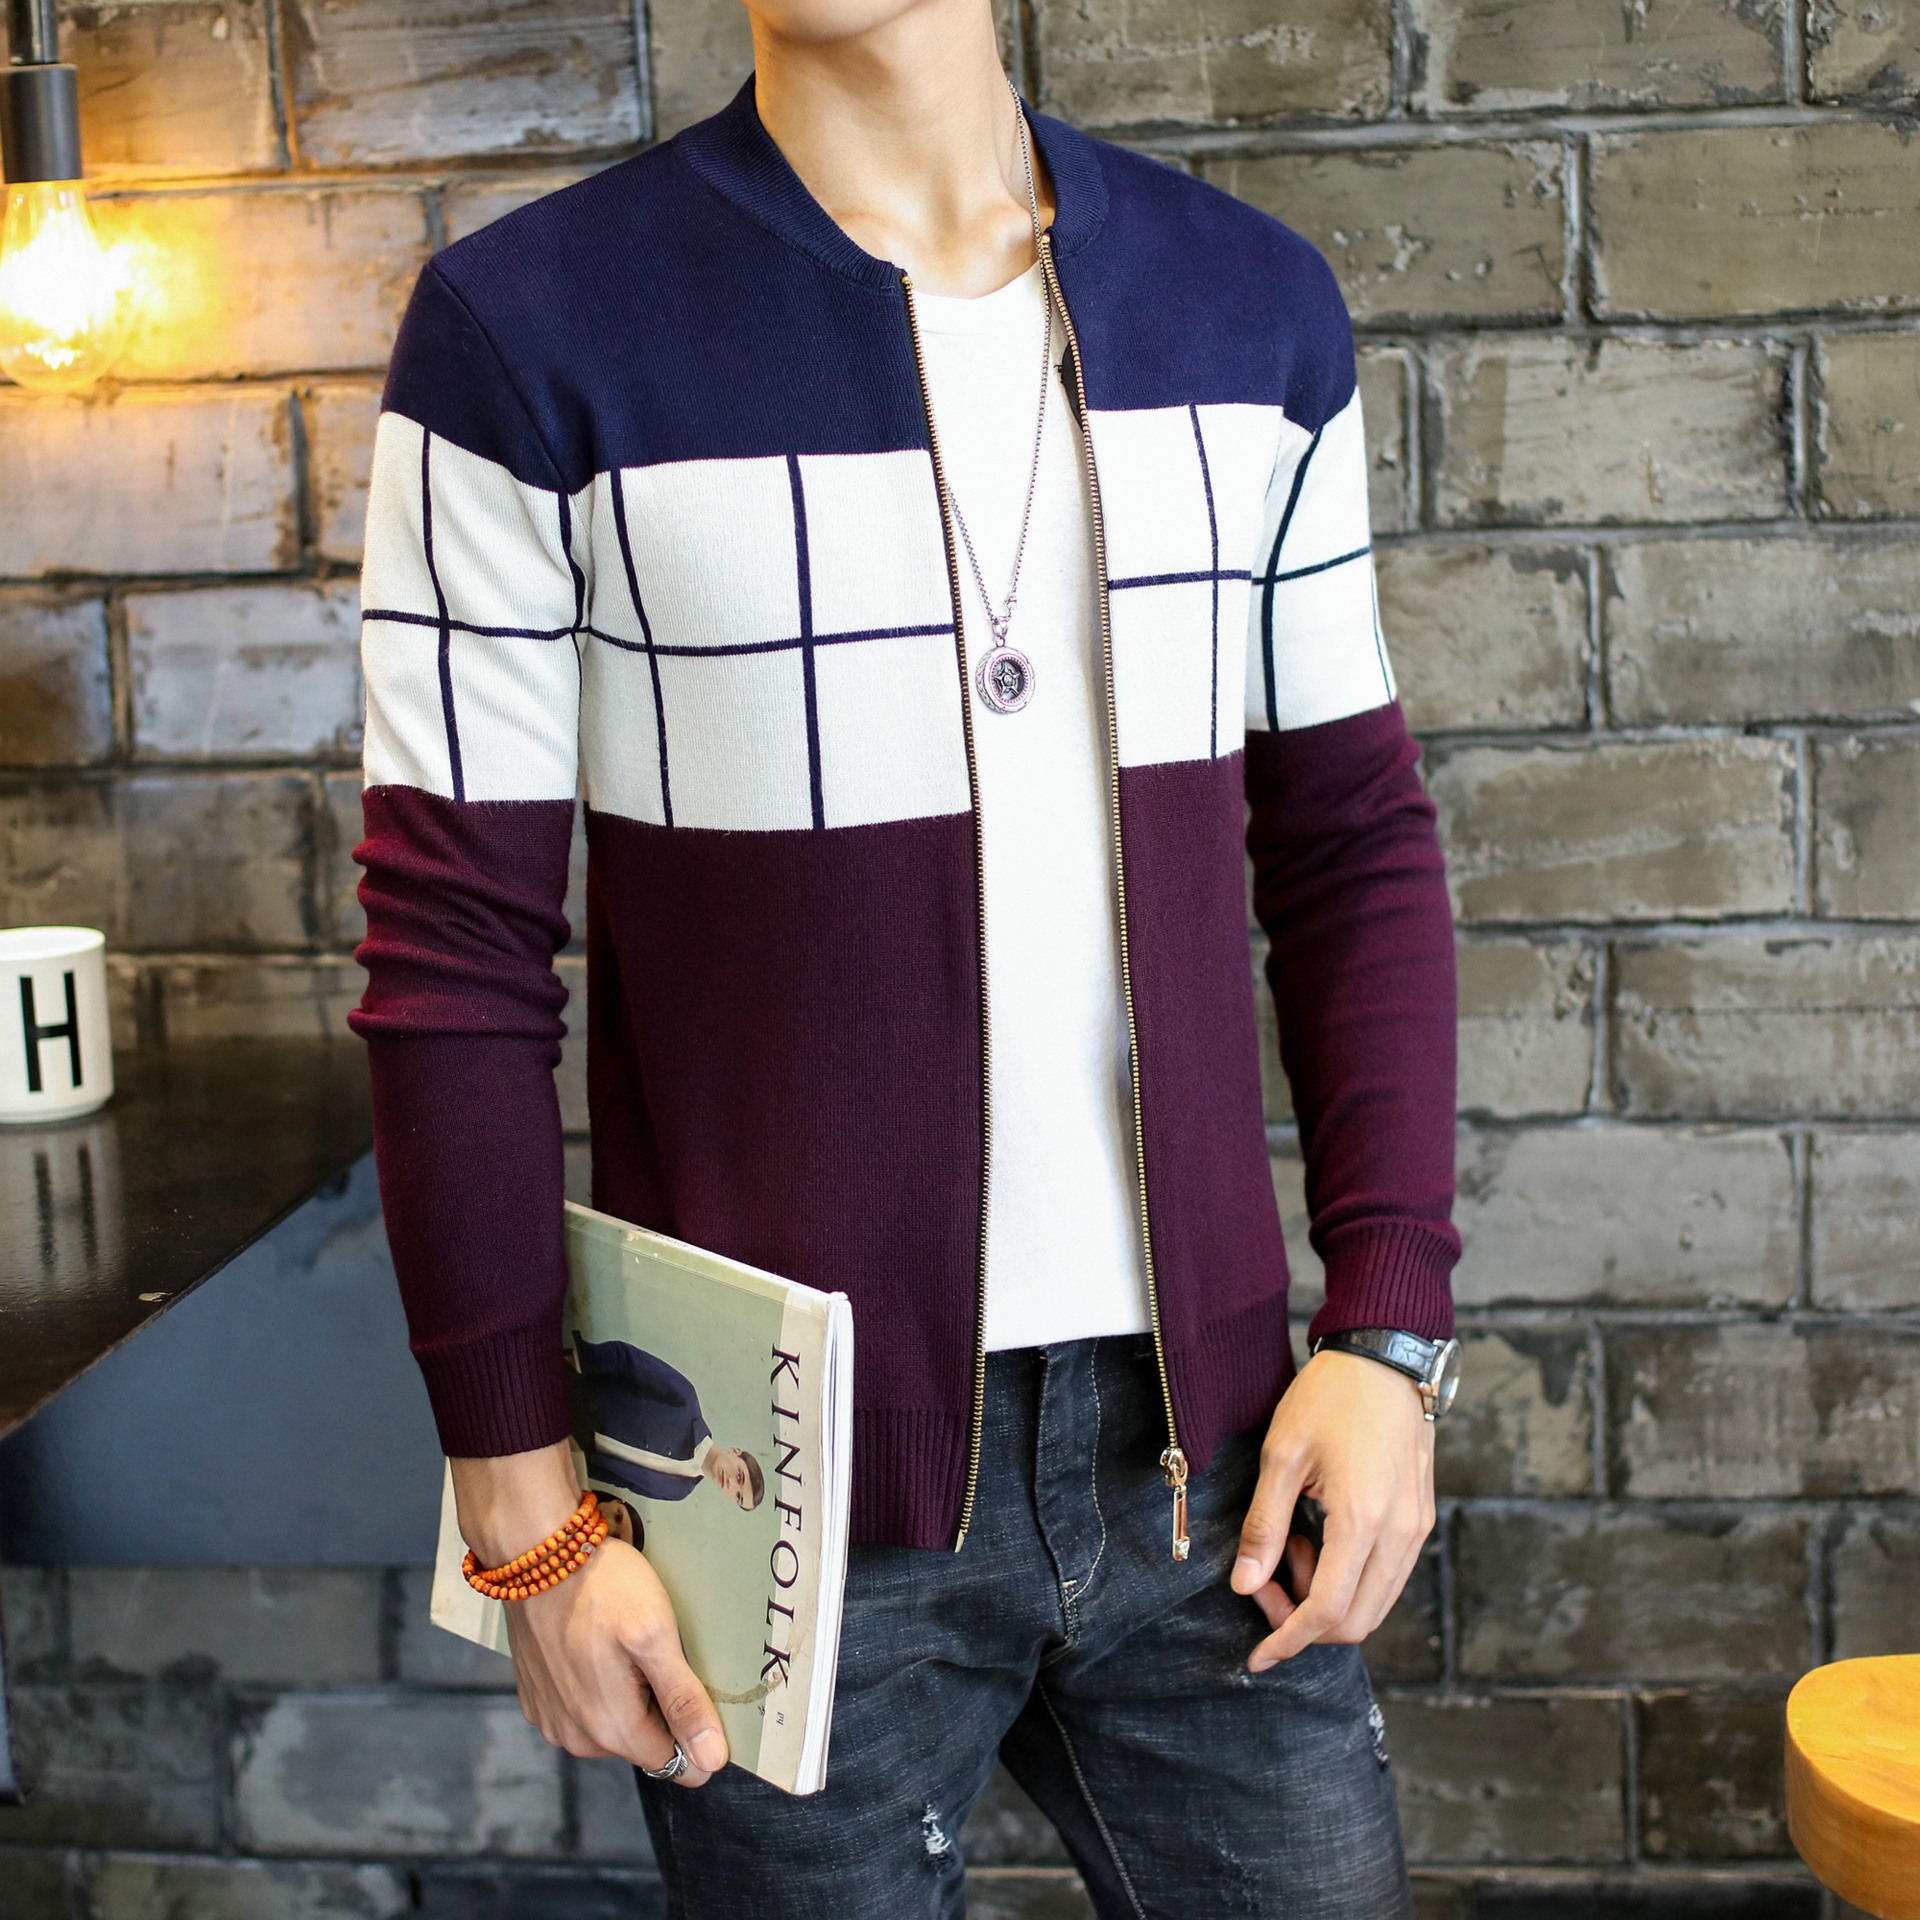 Men Cardigan Cheap Wholesale 2019 New Autumn Winter Hot Selling Men Fashion Casual Warm Nice Sweater Mens Sweaters